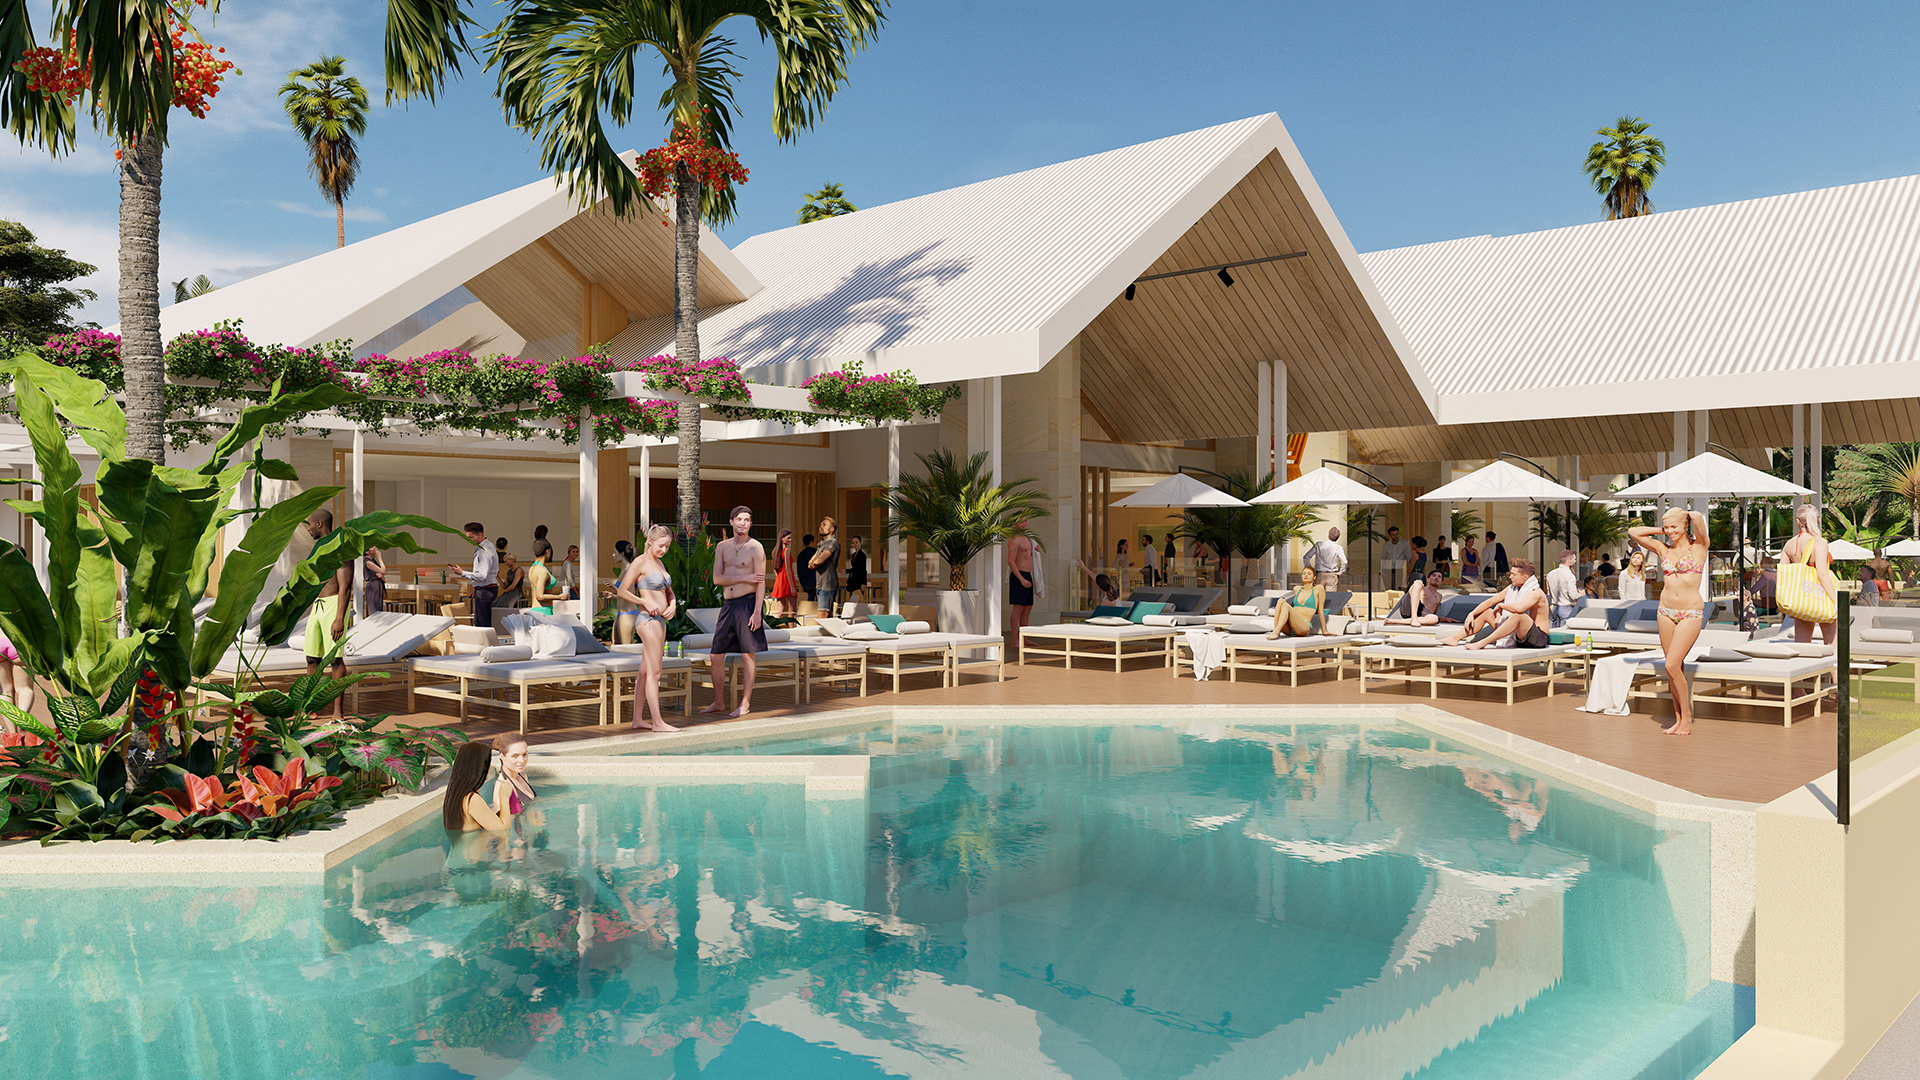 beach bar & resort concept